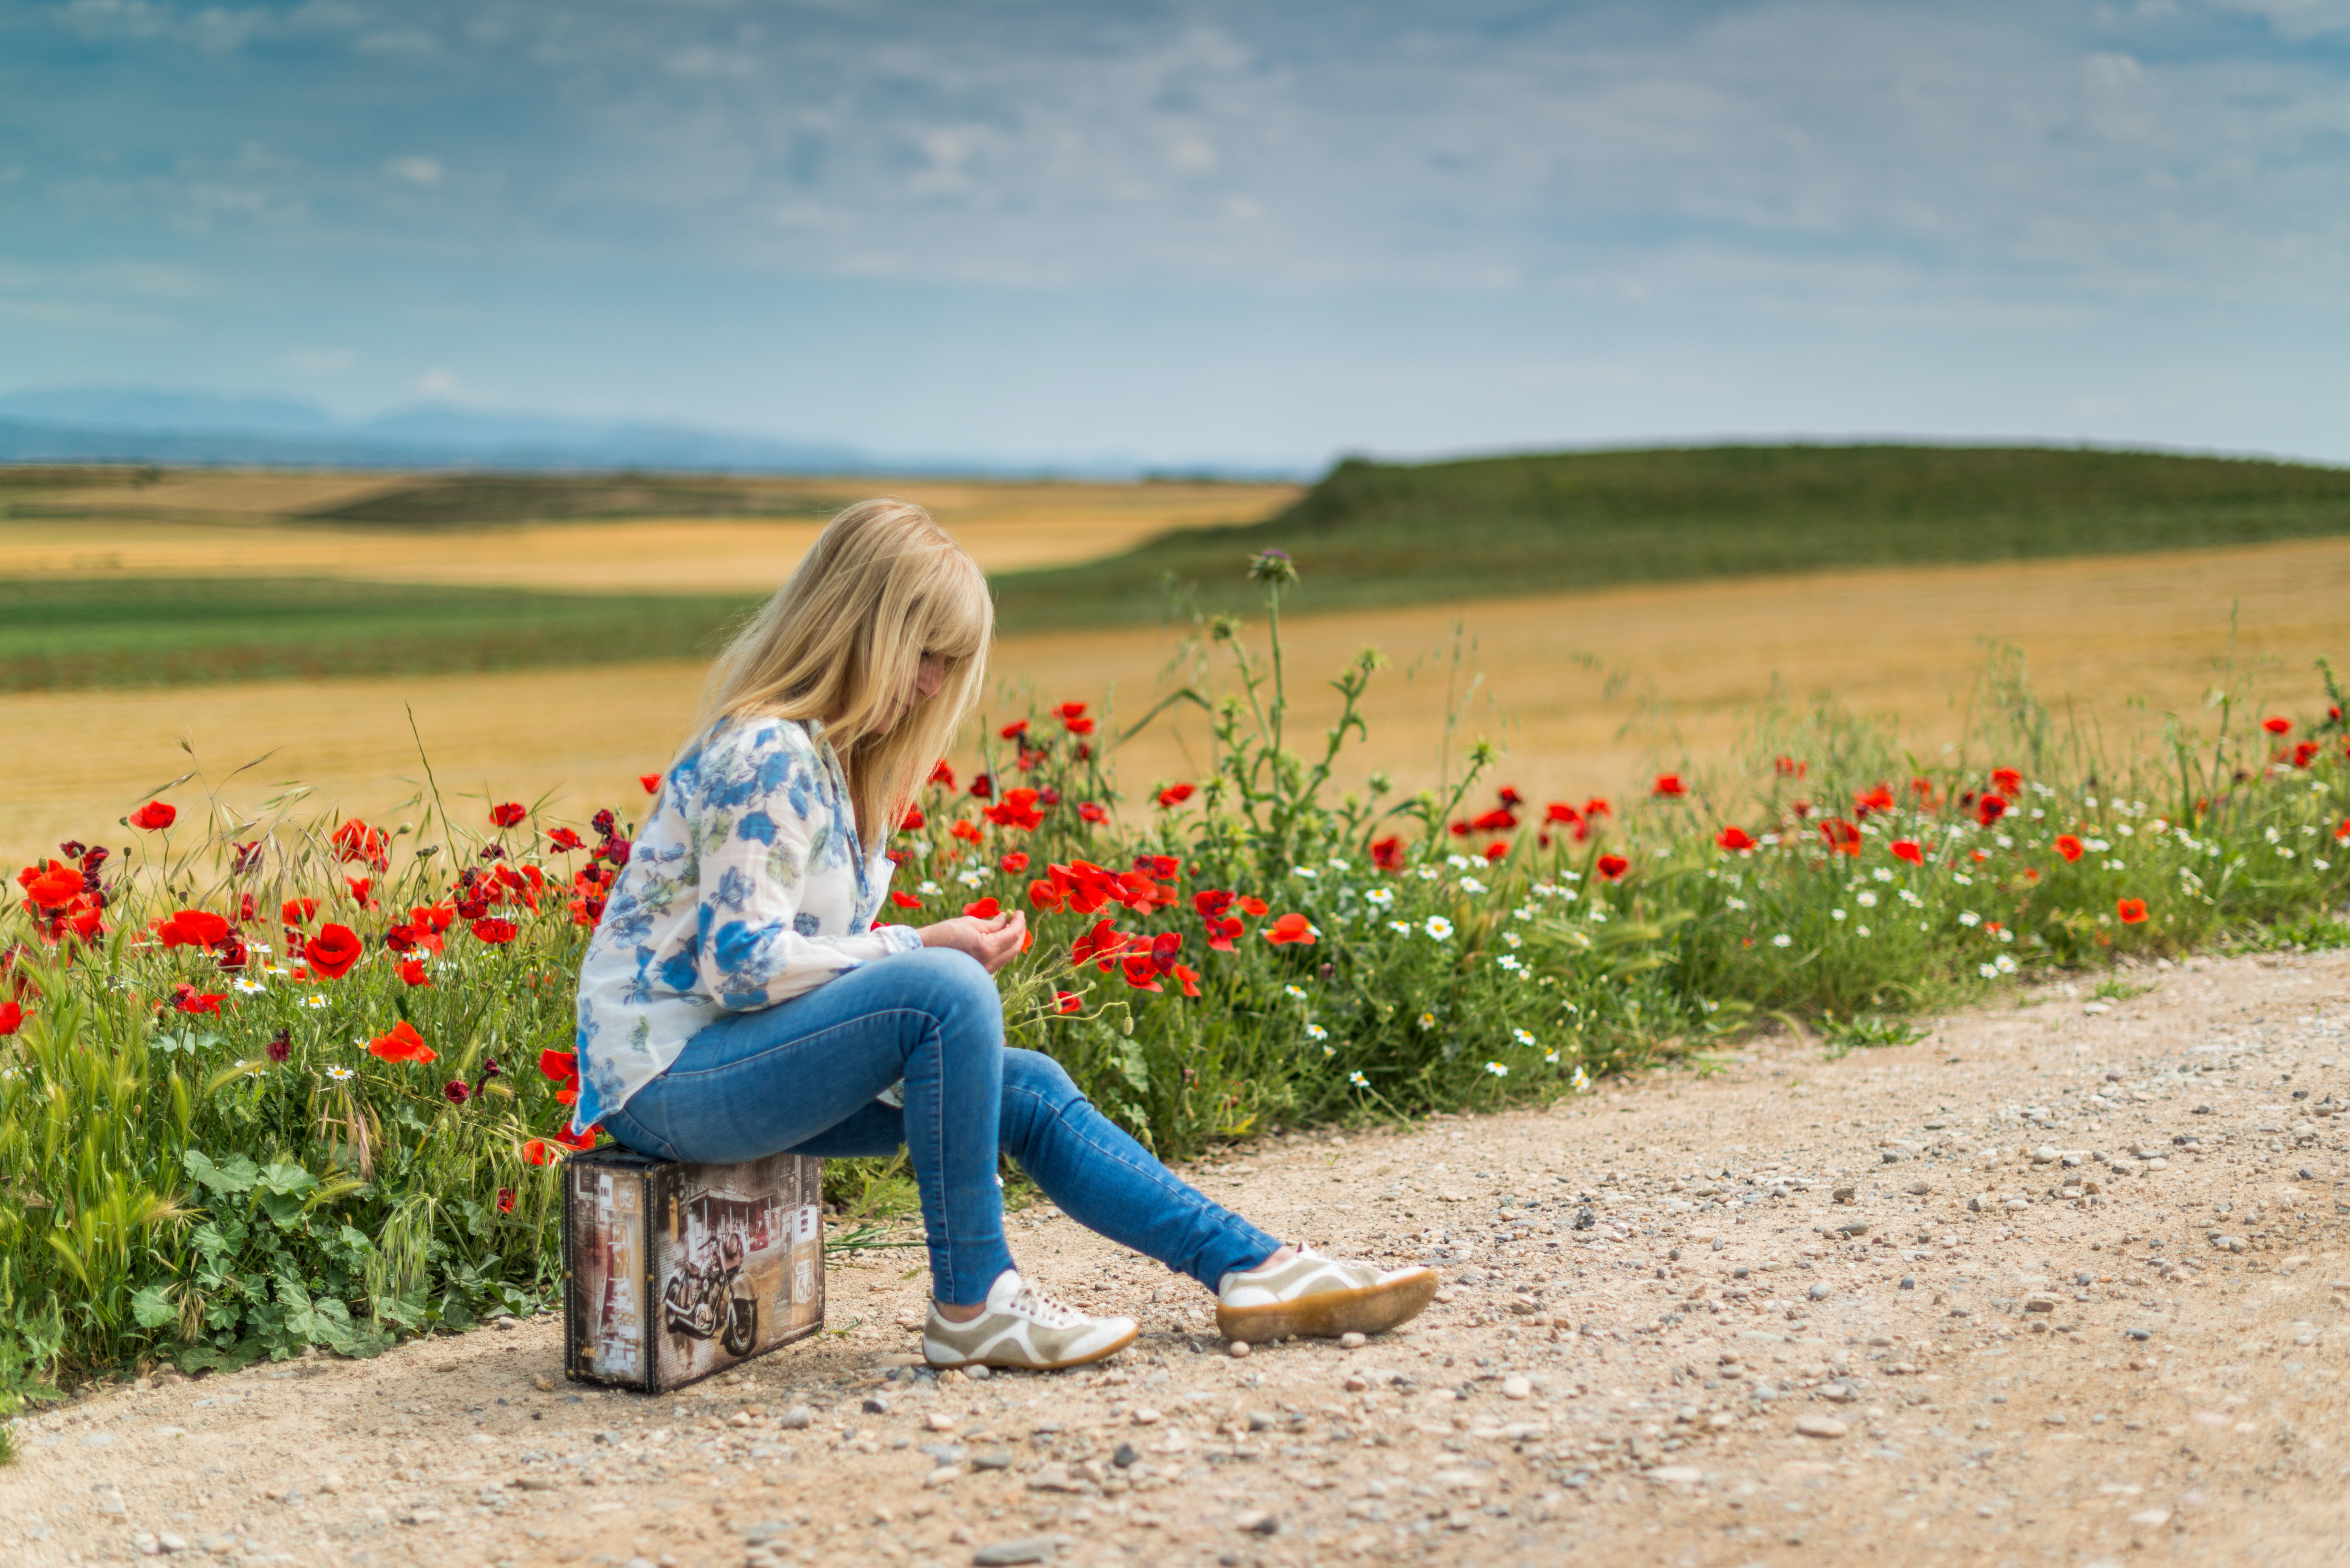 girl-near-red-petal-flowers-at-daytime-160939